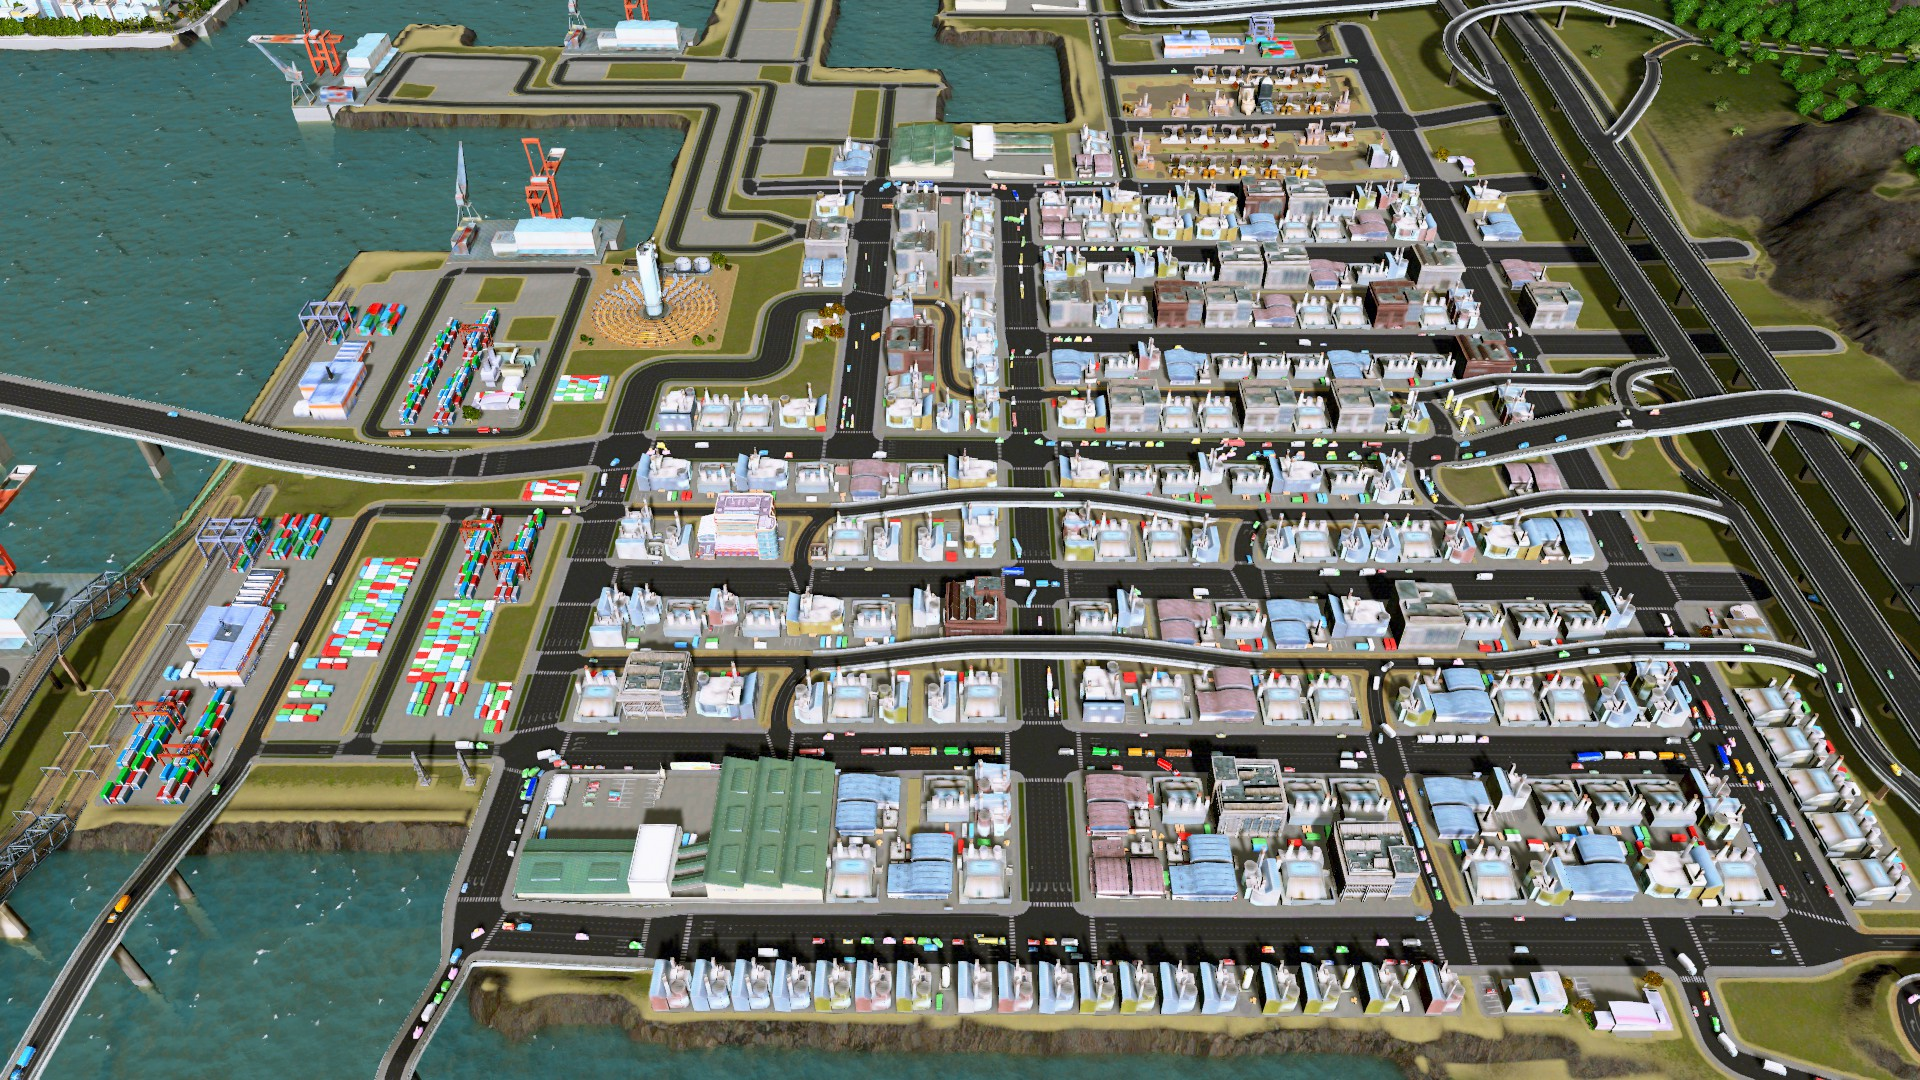 Details on how to create your city in Sims 3 5